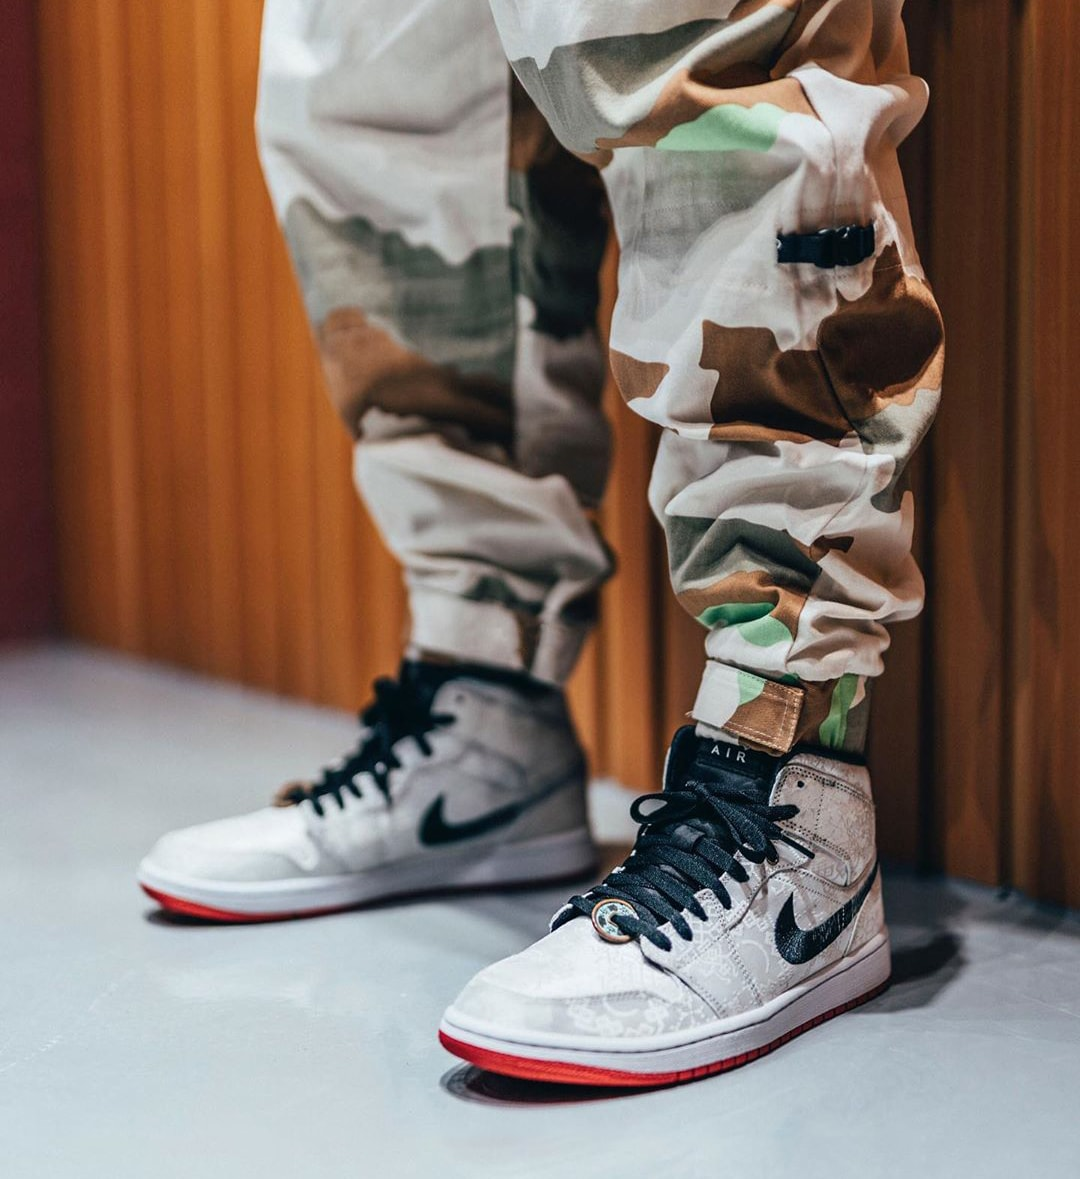 """On-Foot Looks at the CLOT / Edison Chen x Air Jordan 1 Mid """"Fearless"""""""